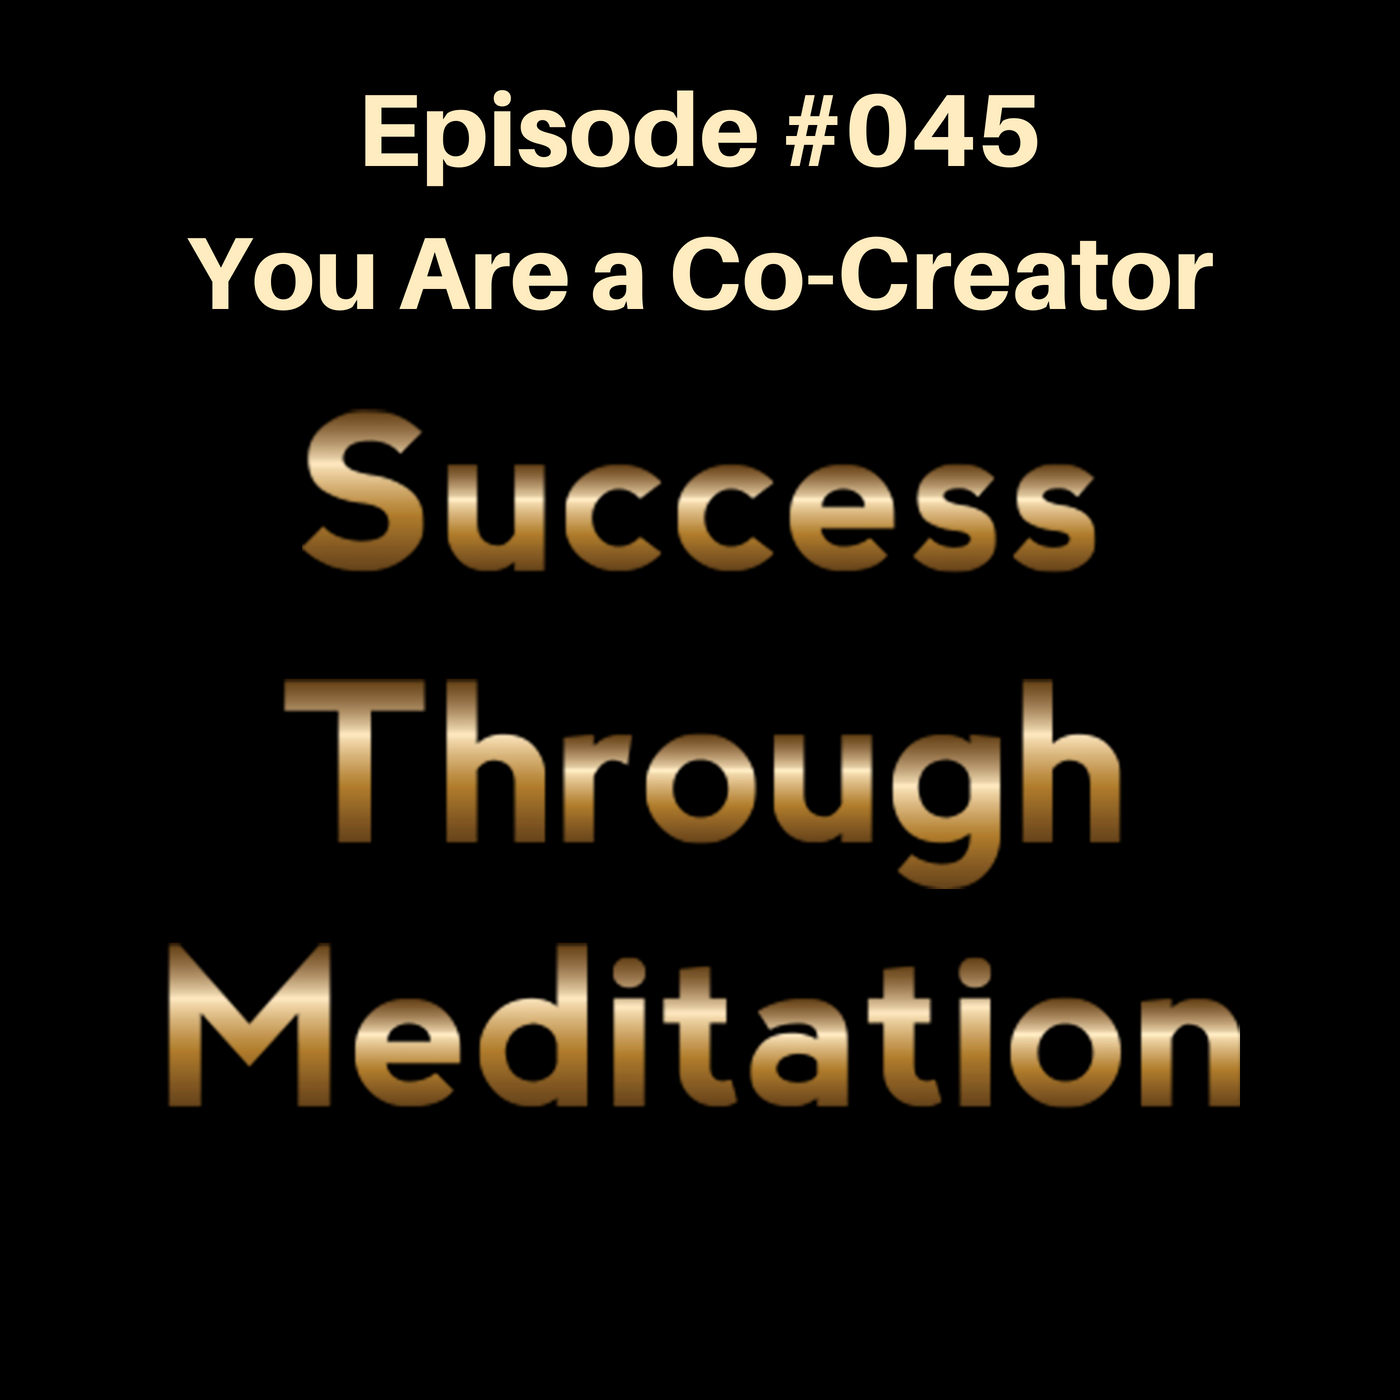 Episode #045 - You Are a Co-Creator